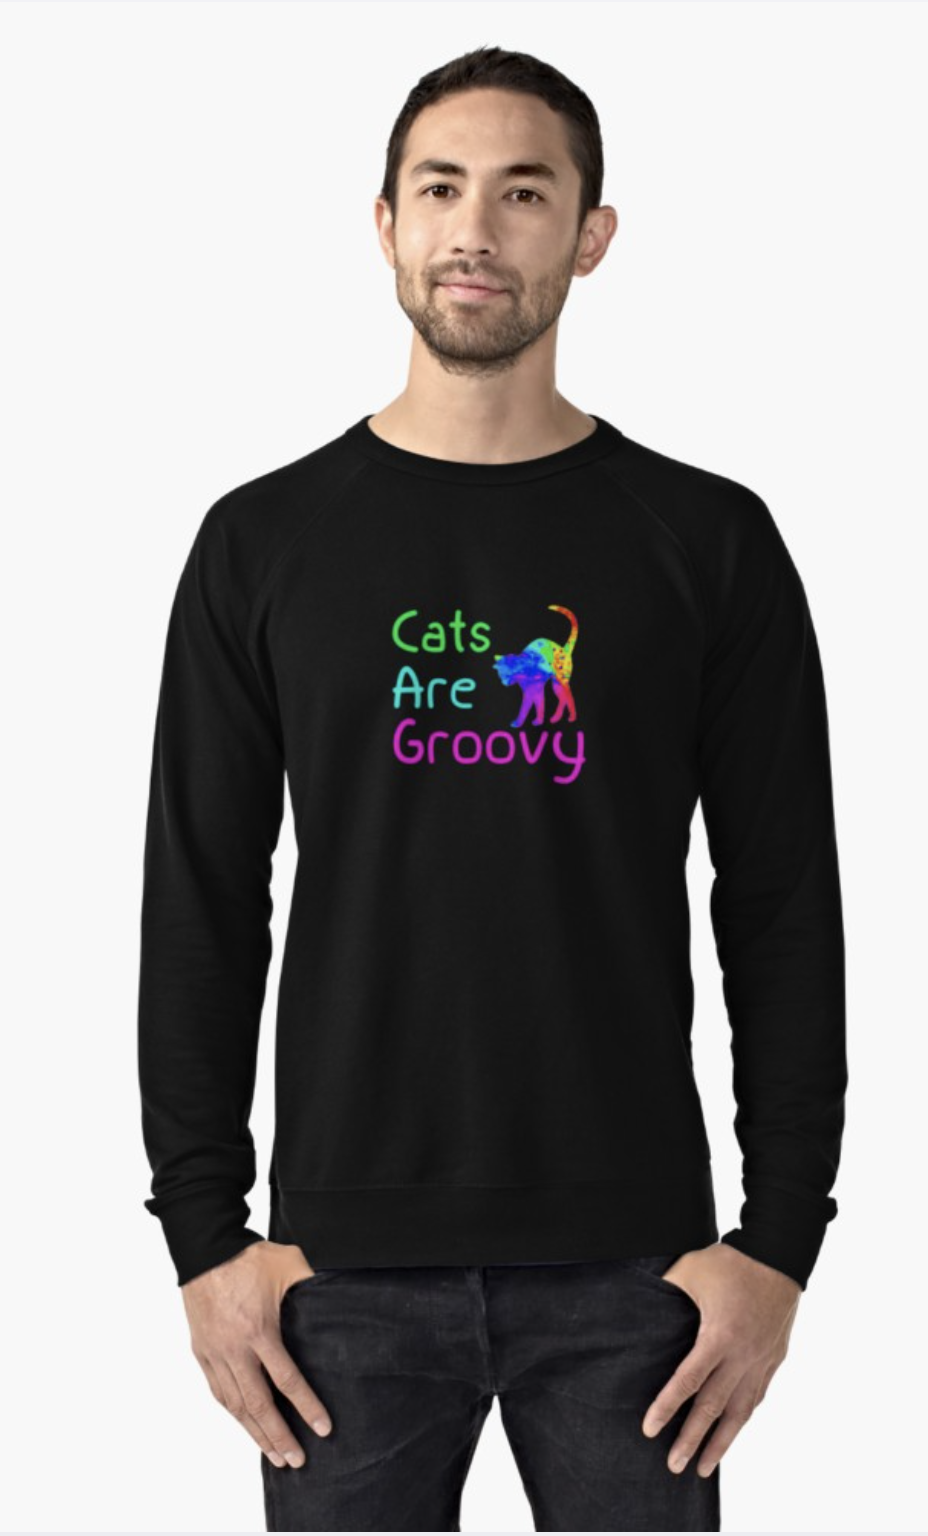 Cats are Groovy Sweatshirt